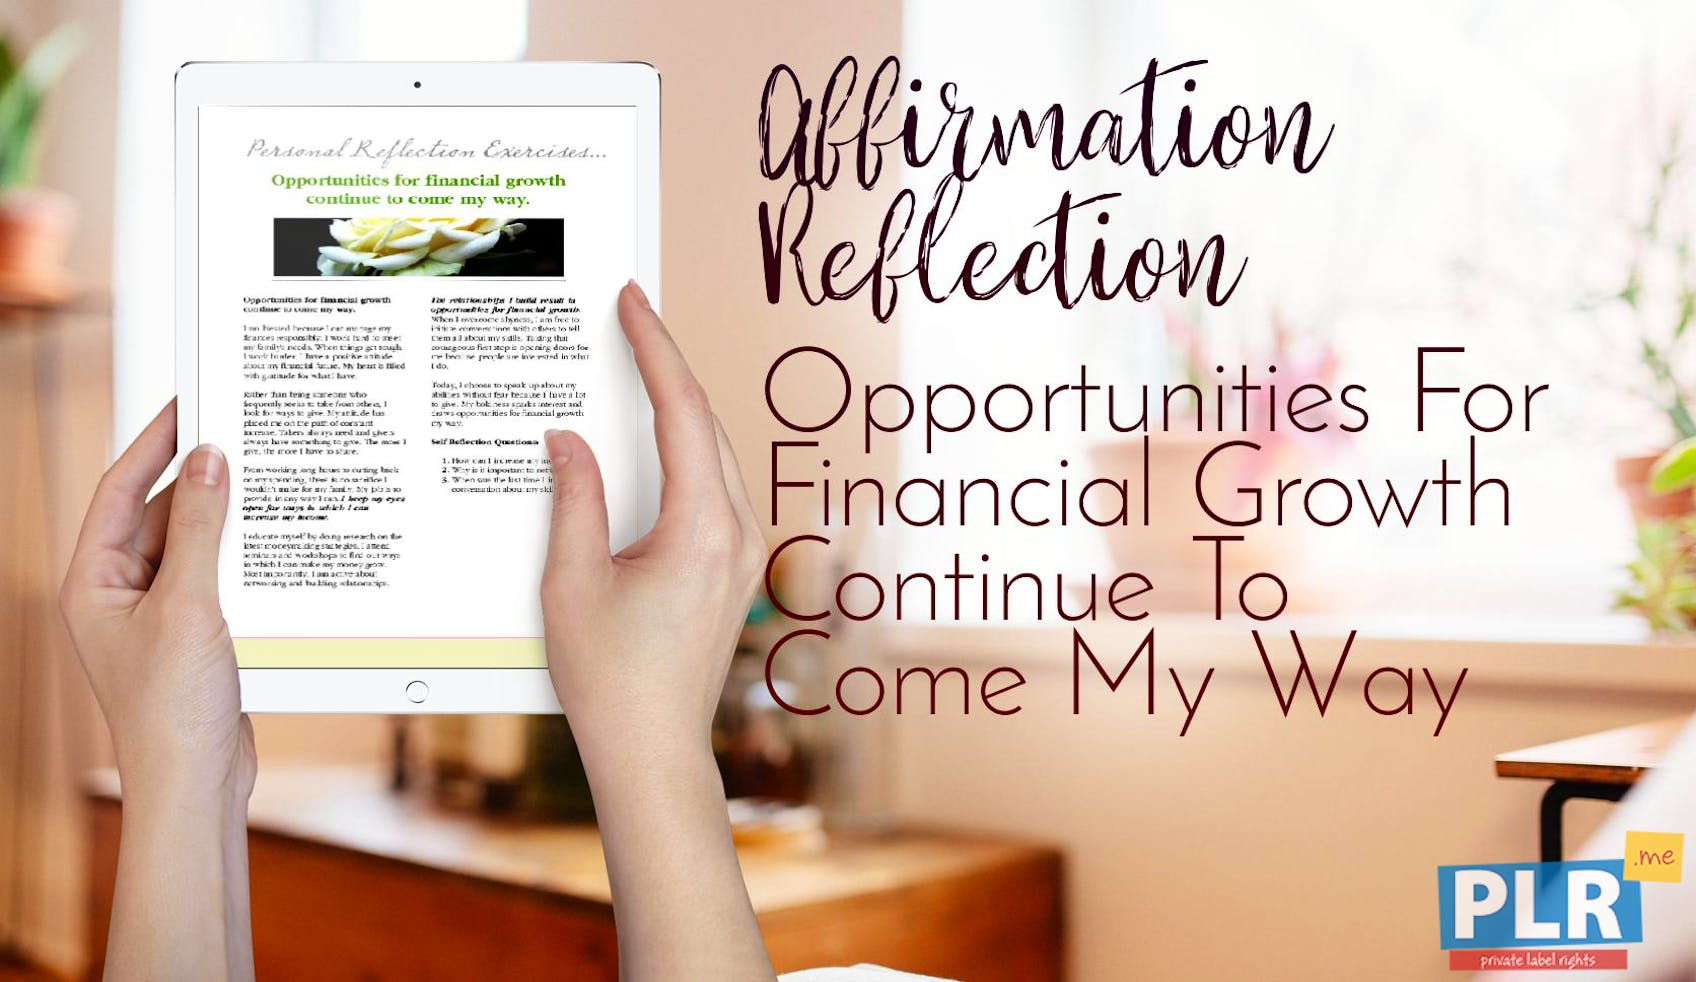 Opportunities For Financial Growth Continue To Come My Way